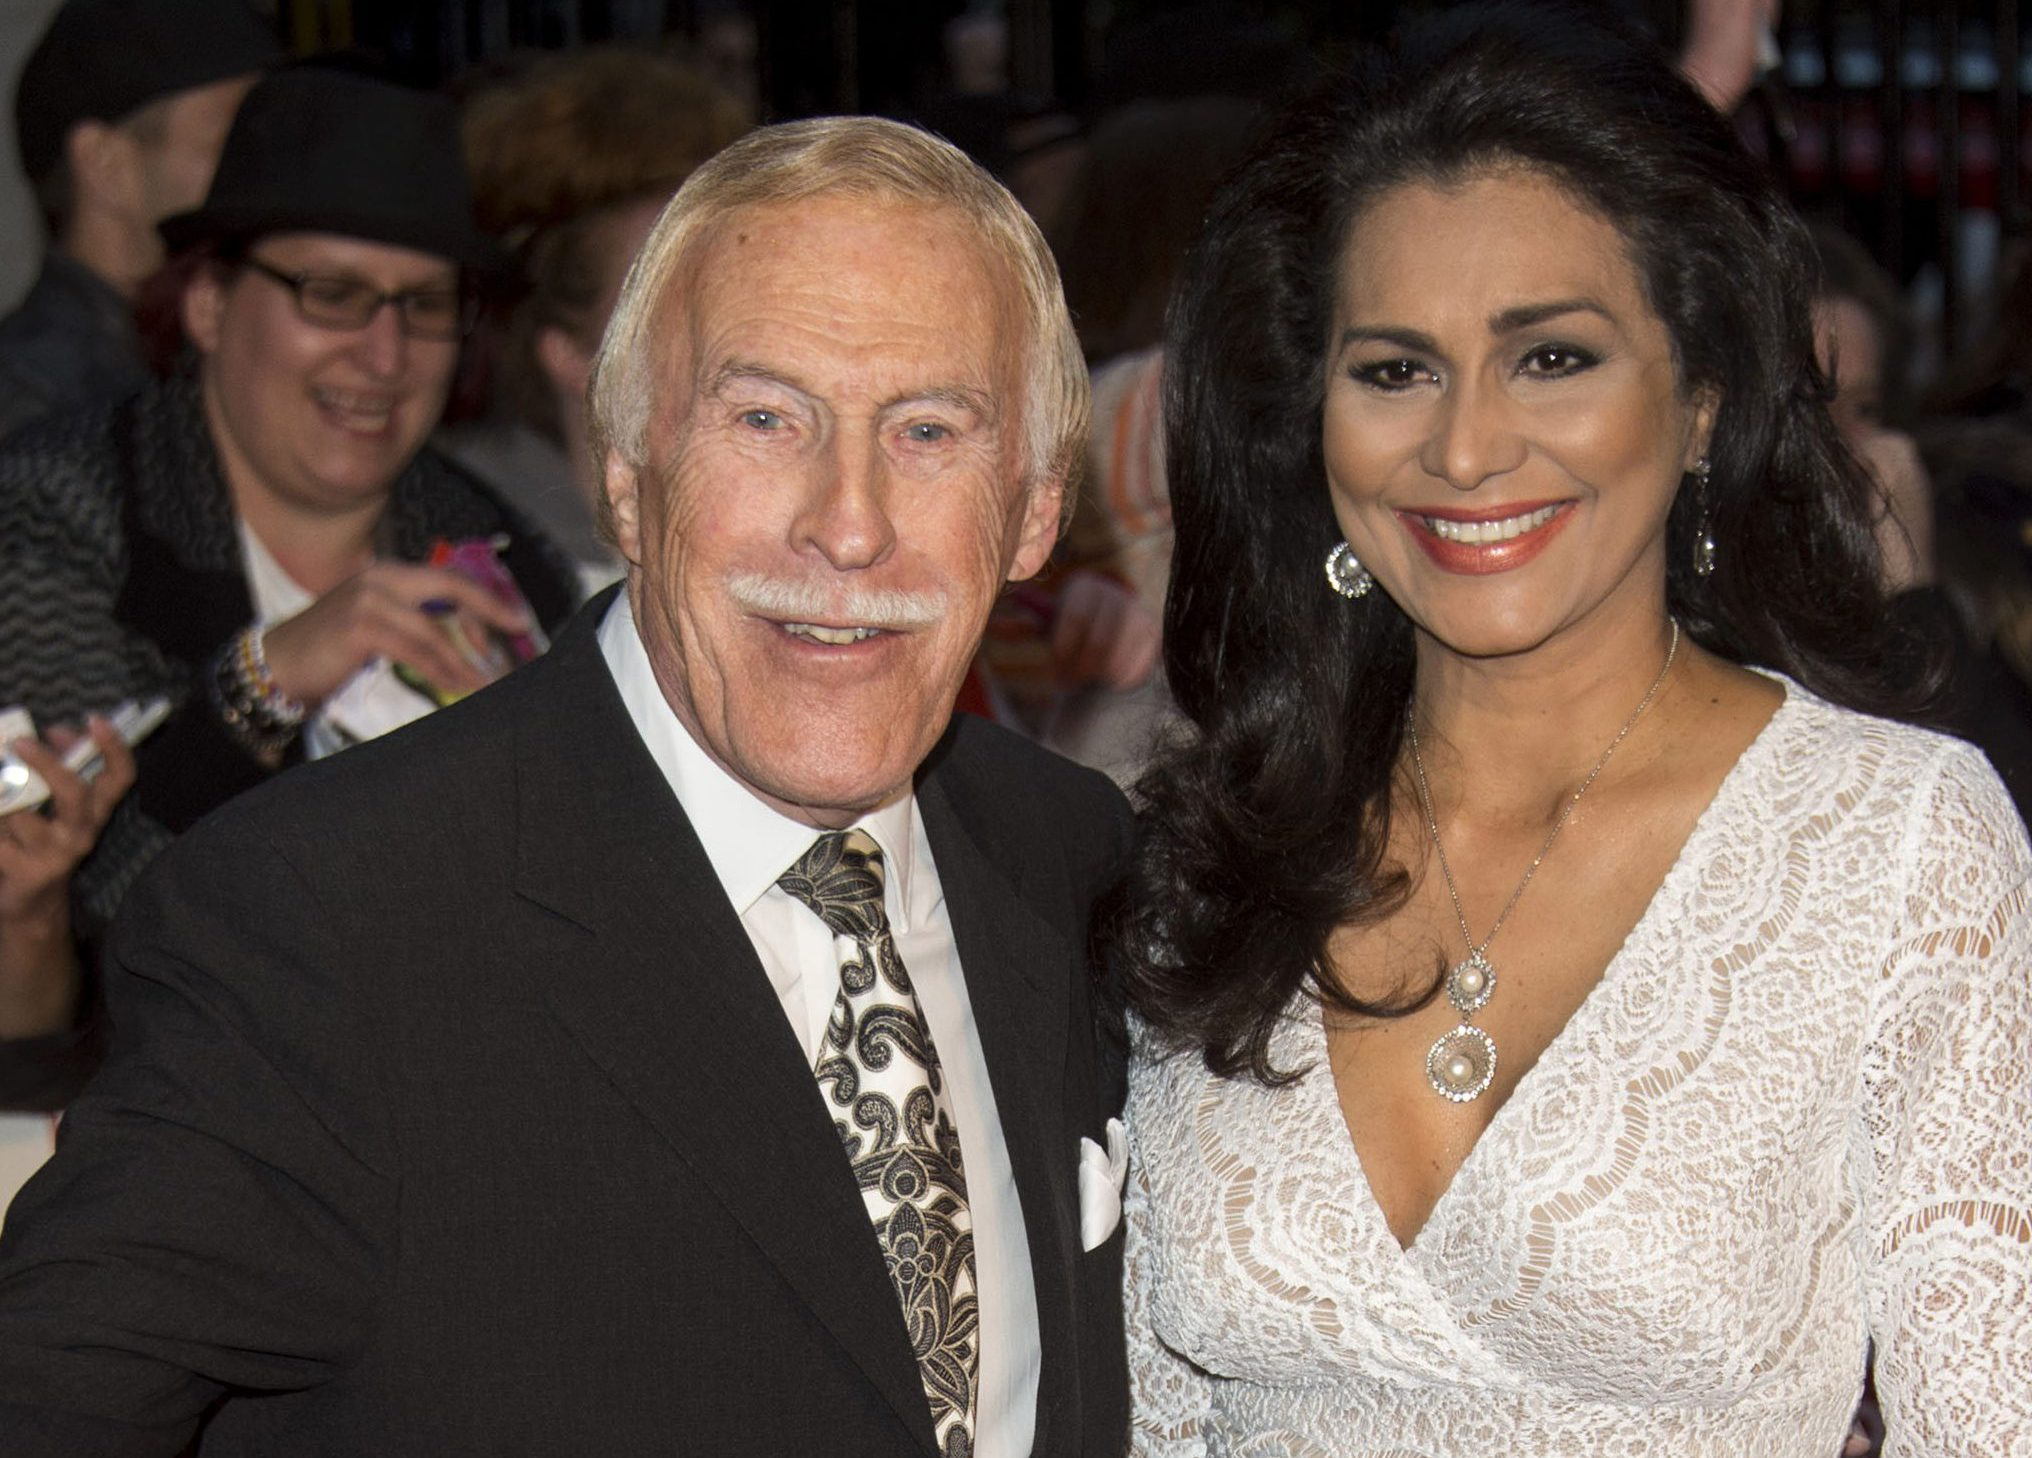 Who is Wilnelia Merced? Bruce Forsyth's widow who presented an award at the NTAs 2018 in his honour